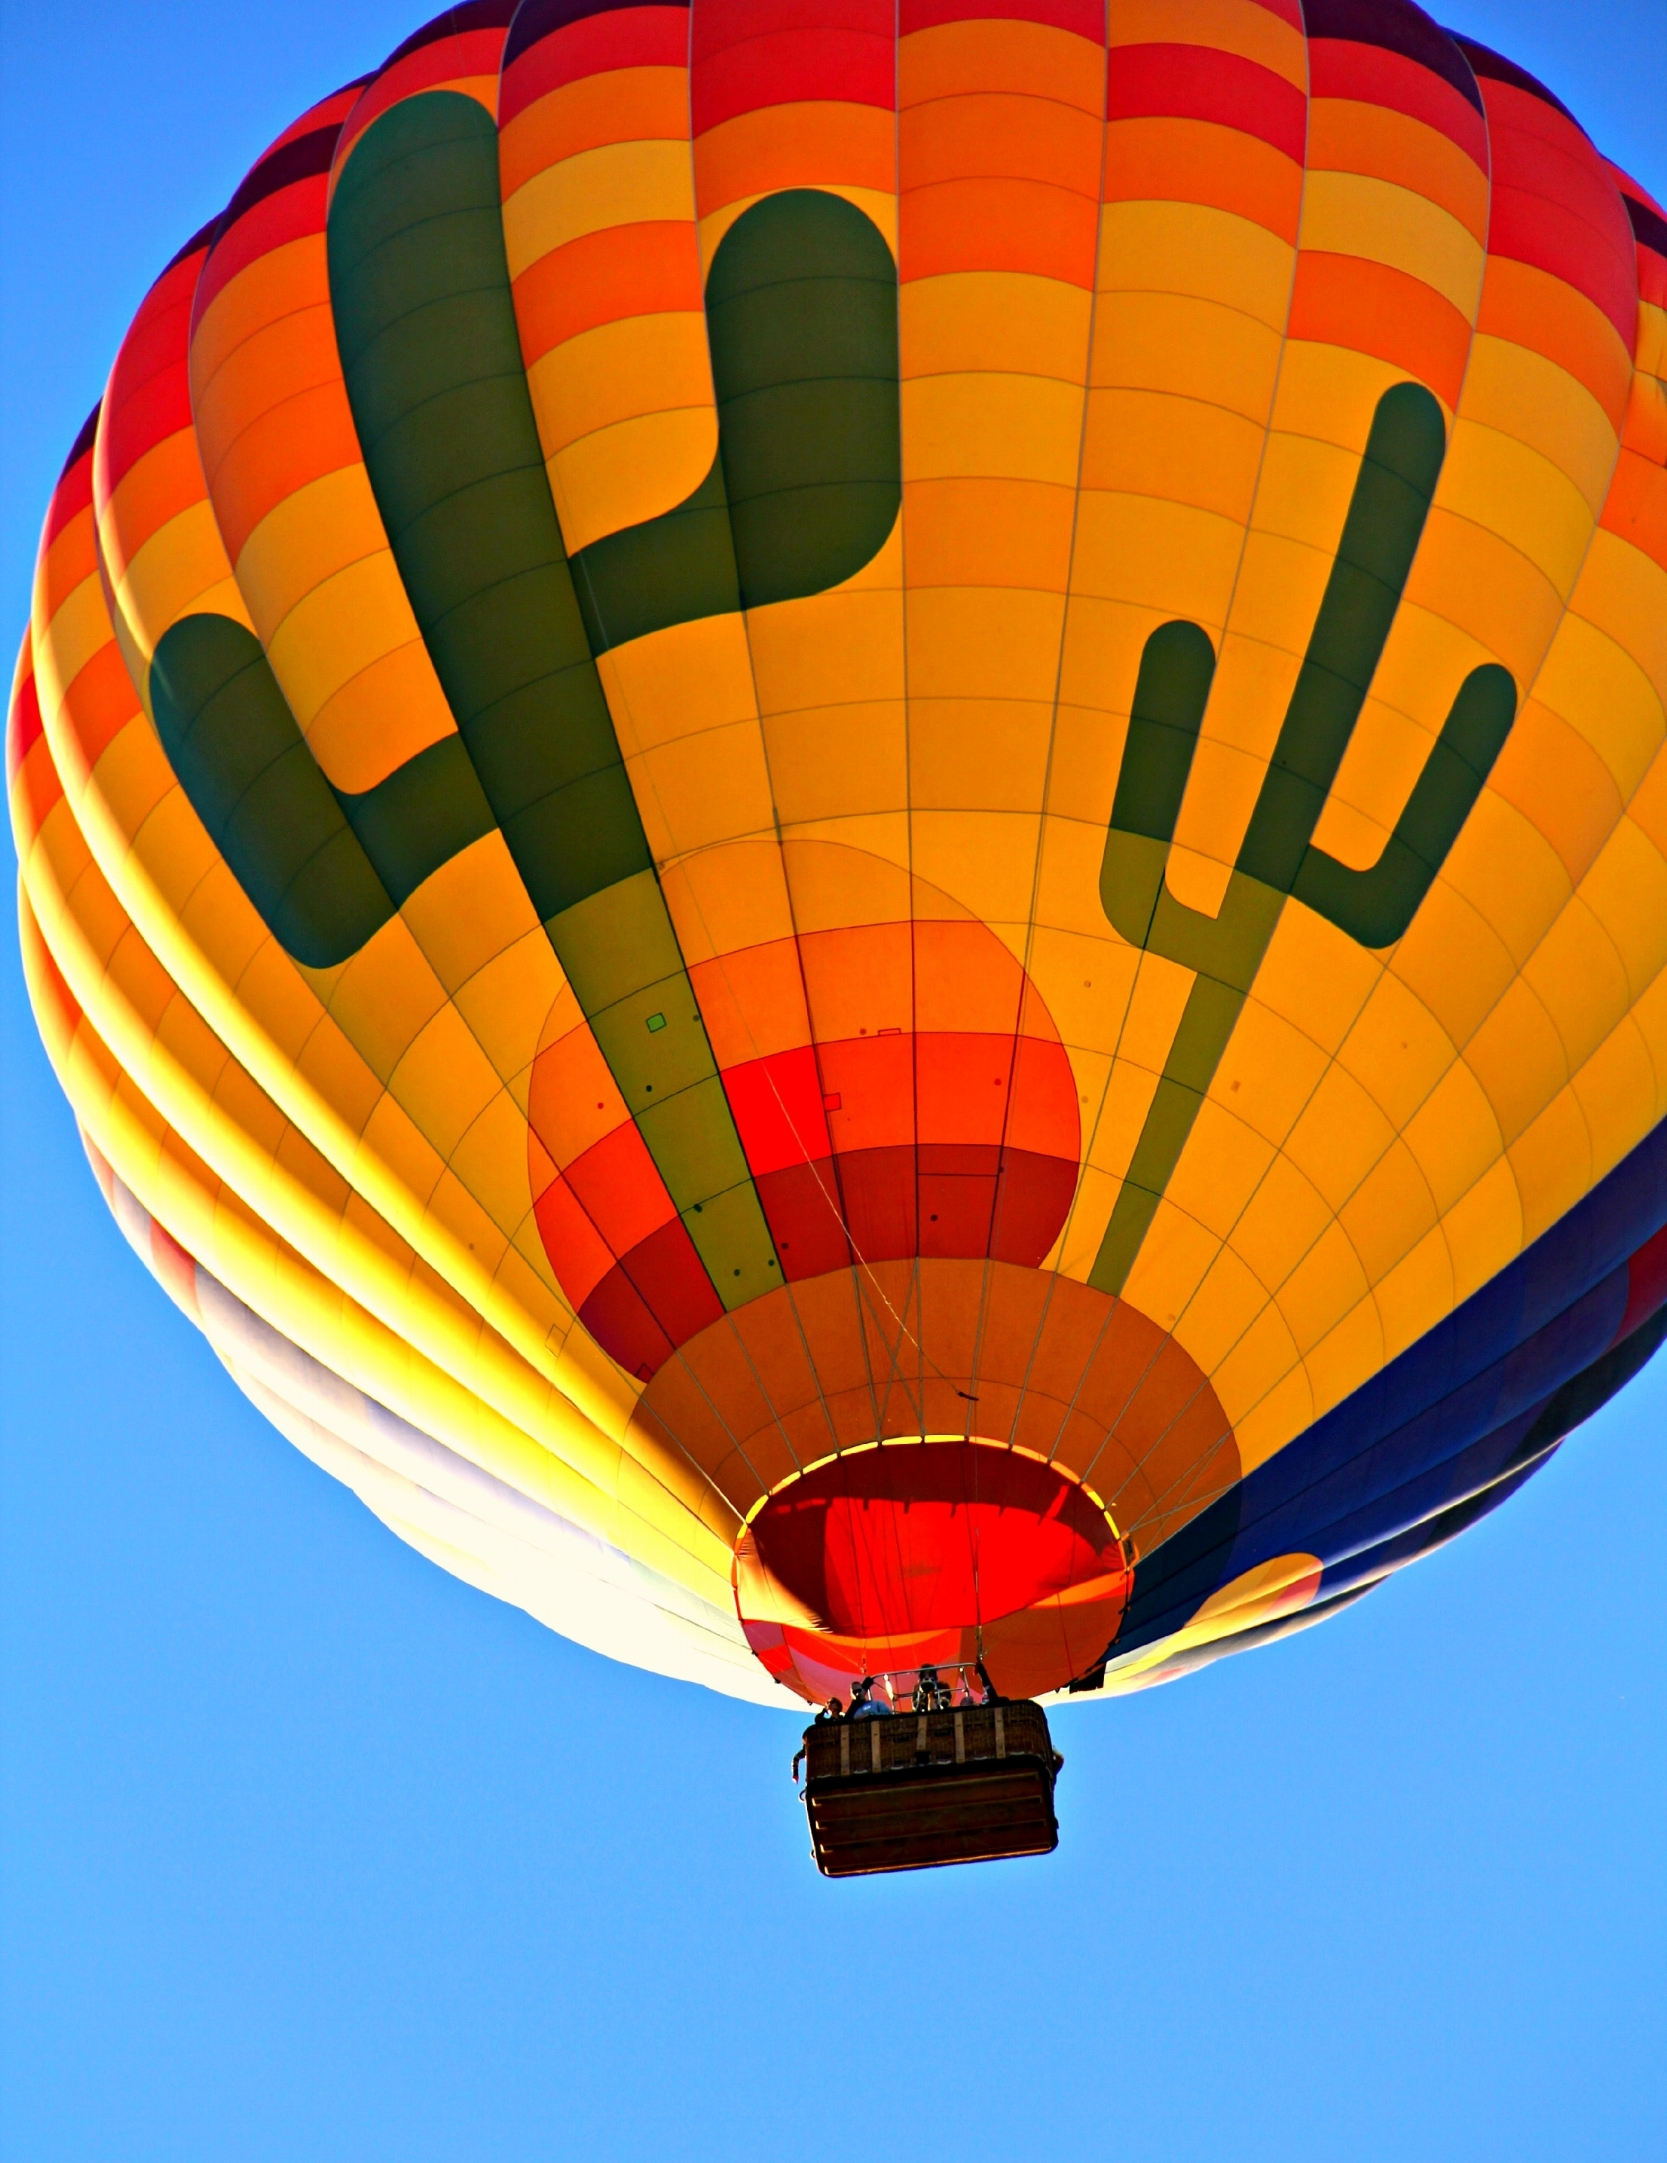 balloon-colorful-colourful-46233.jpg